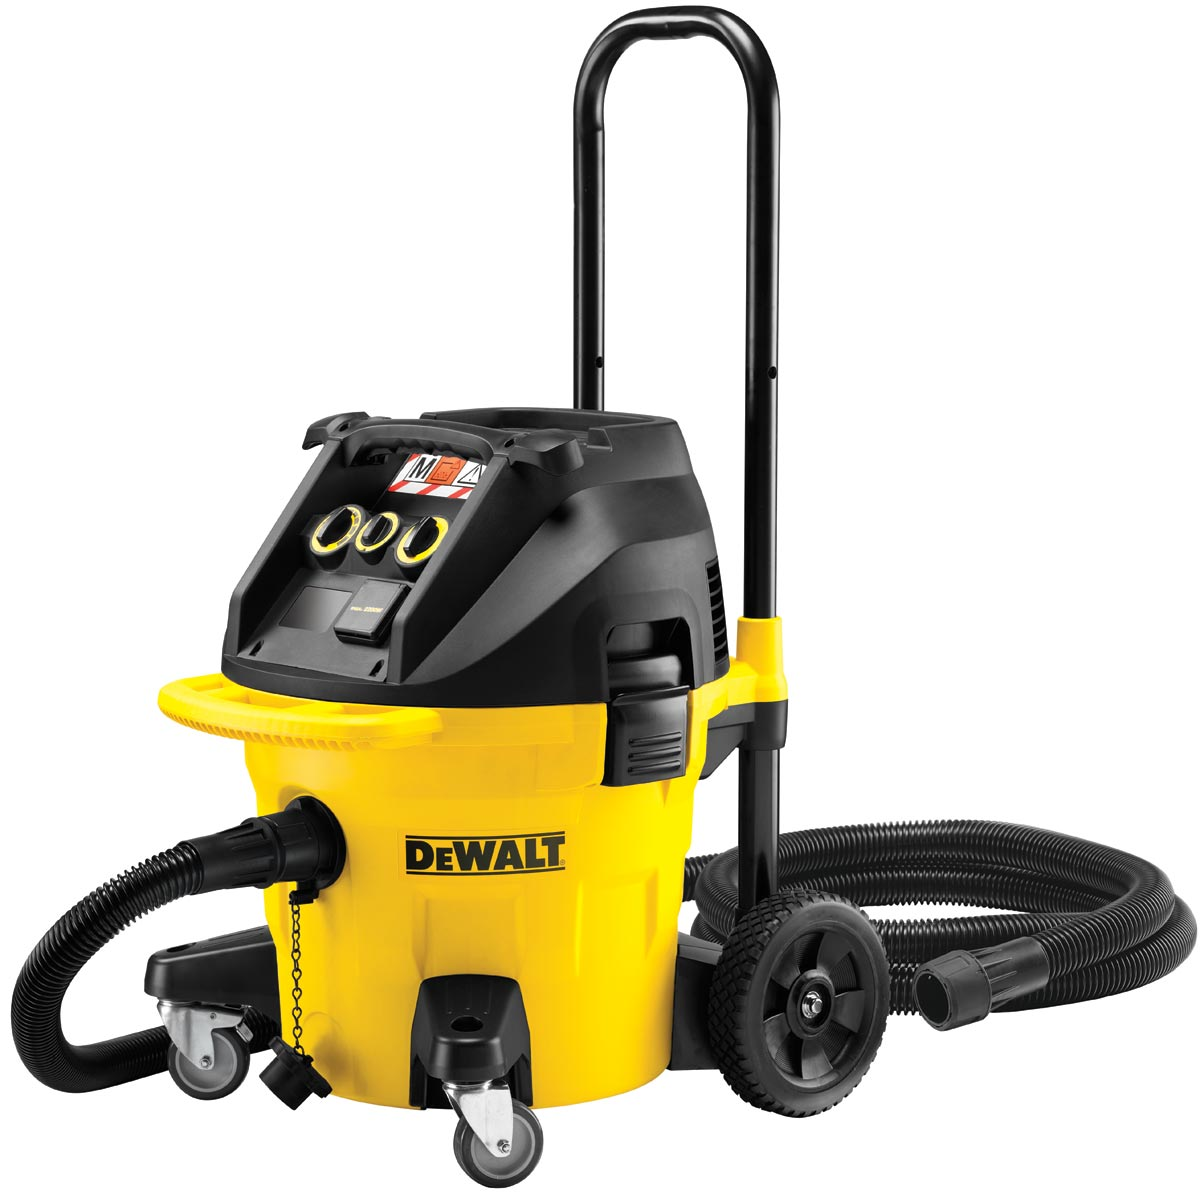 DEWALT DWV902M 240V M CLASS CONSTRUCTION DUST EXTRACTOR